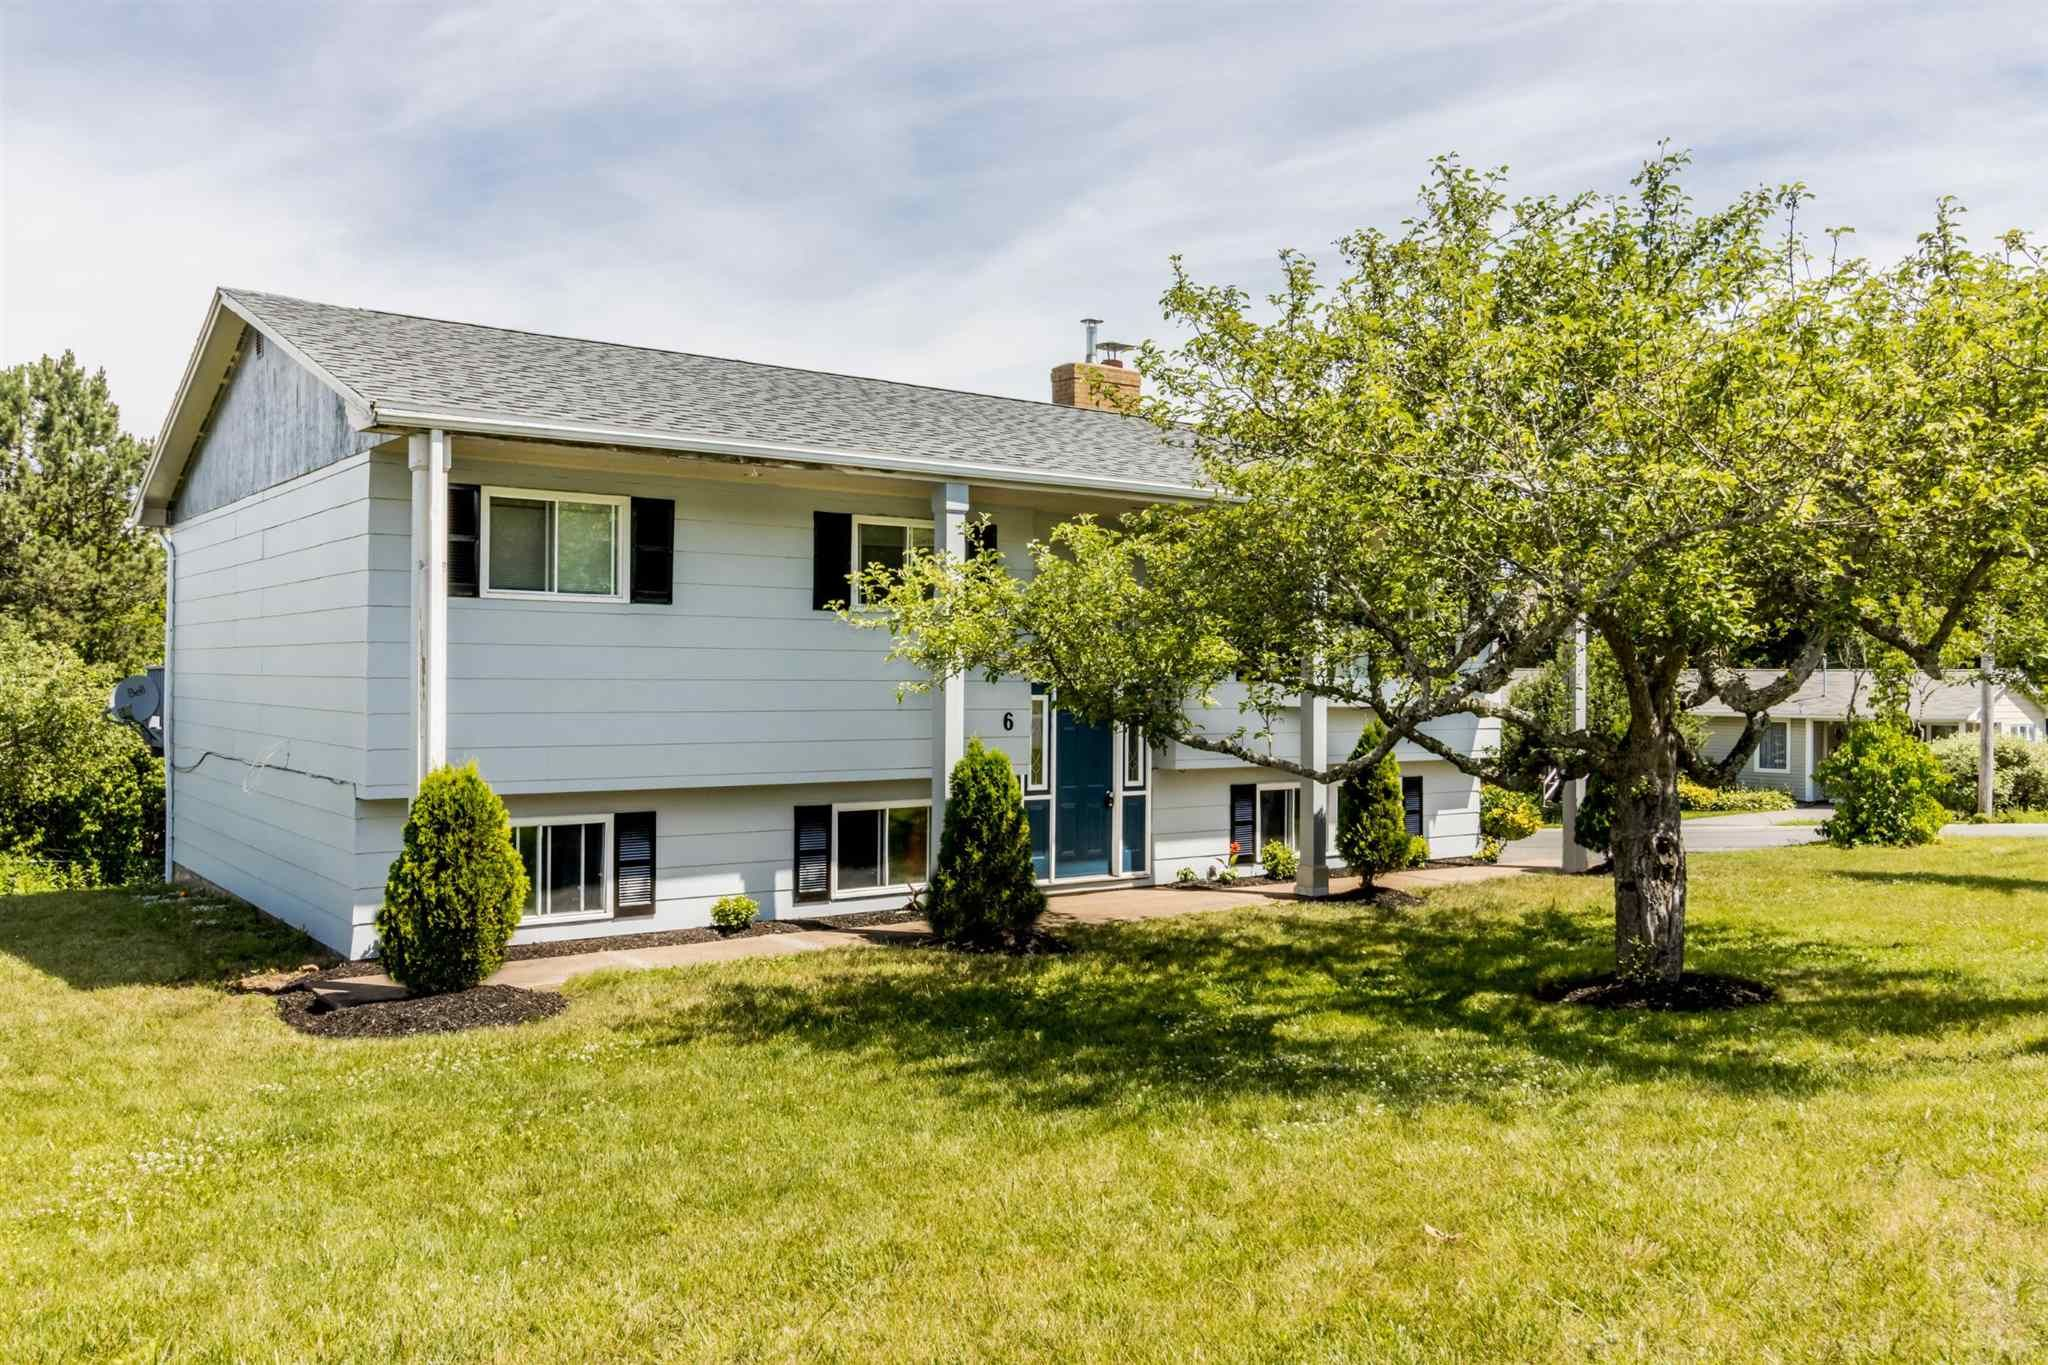 Main Photo: 6 Glooscap Terrace in Wolfville: 404-Kings County Residential for sale (Annapolis Valley)  : MLS®# 202110349